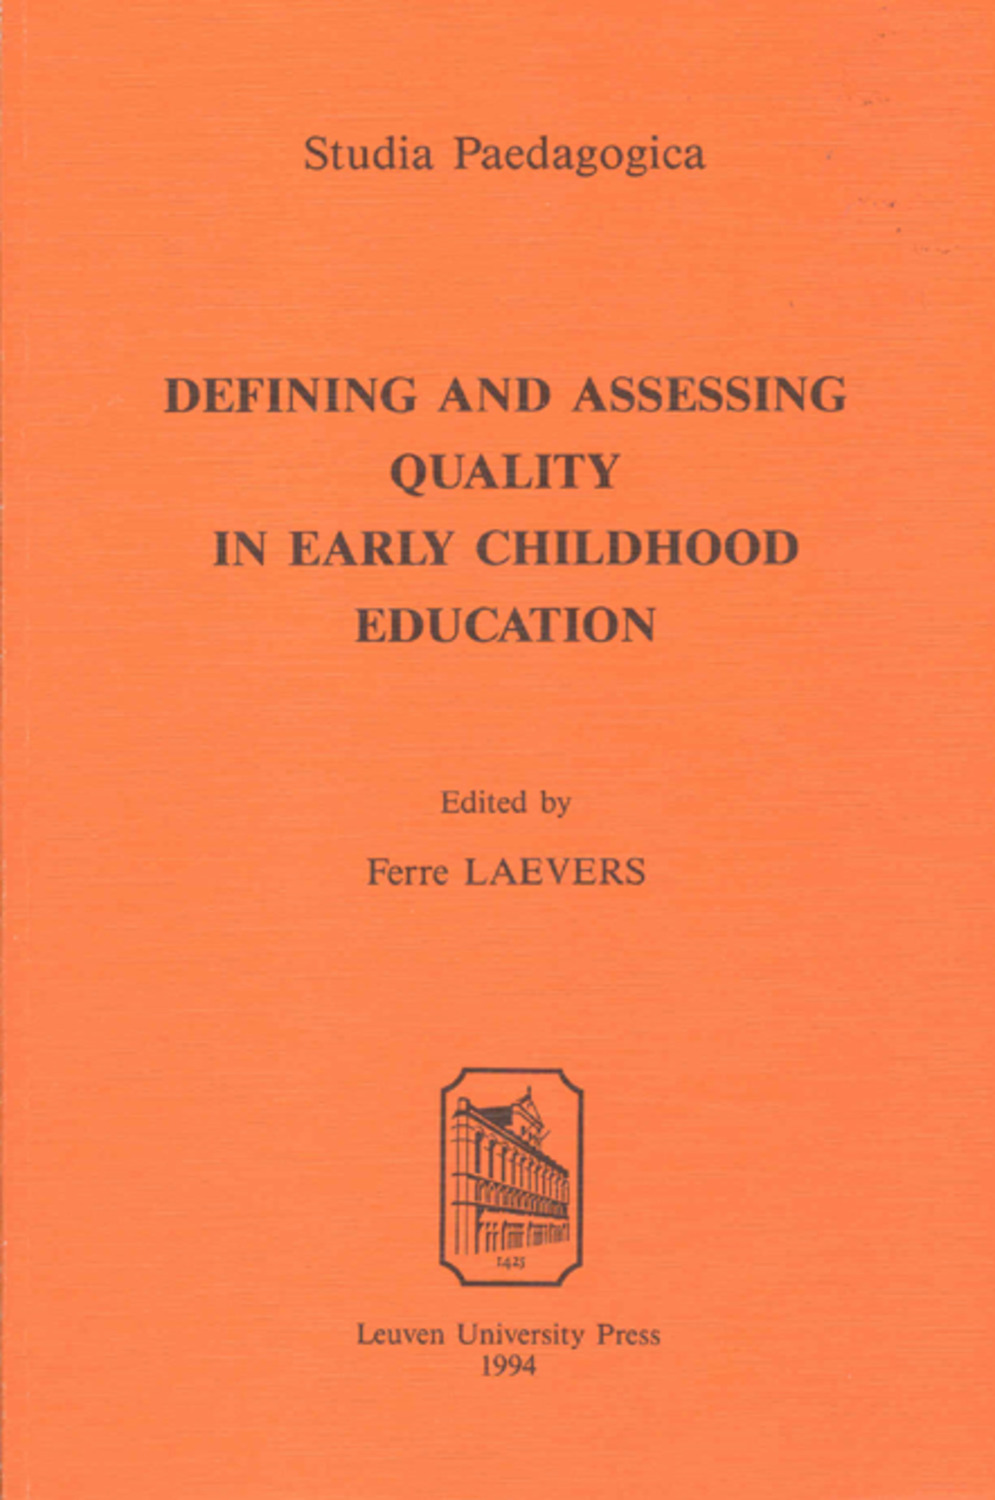 Defining and Assessing Quality in Early Childhood Education